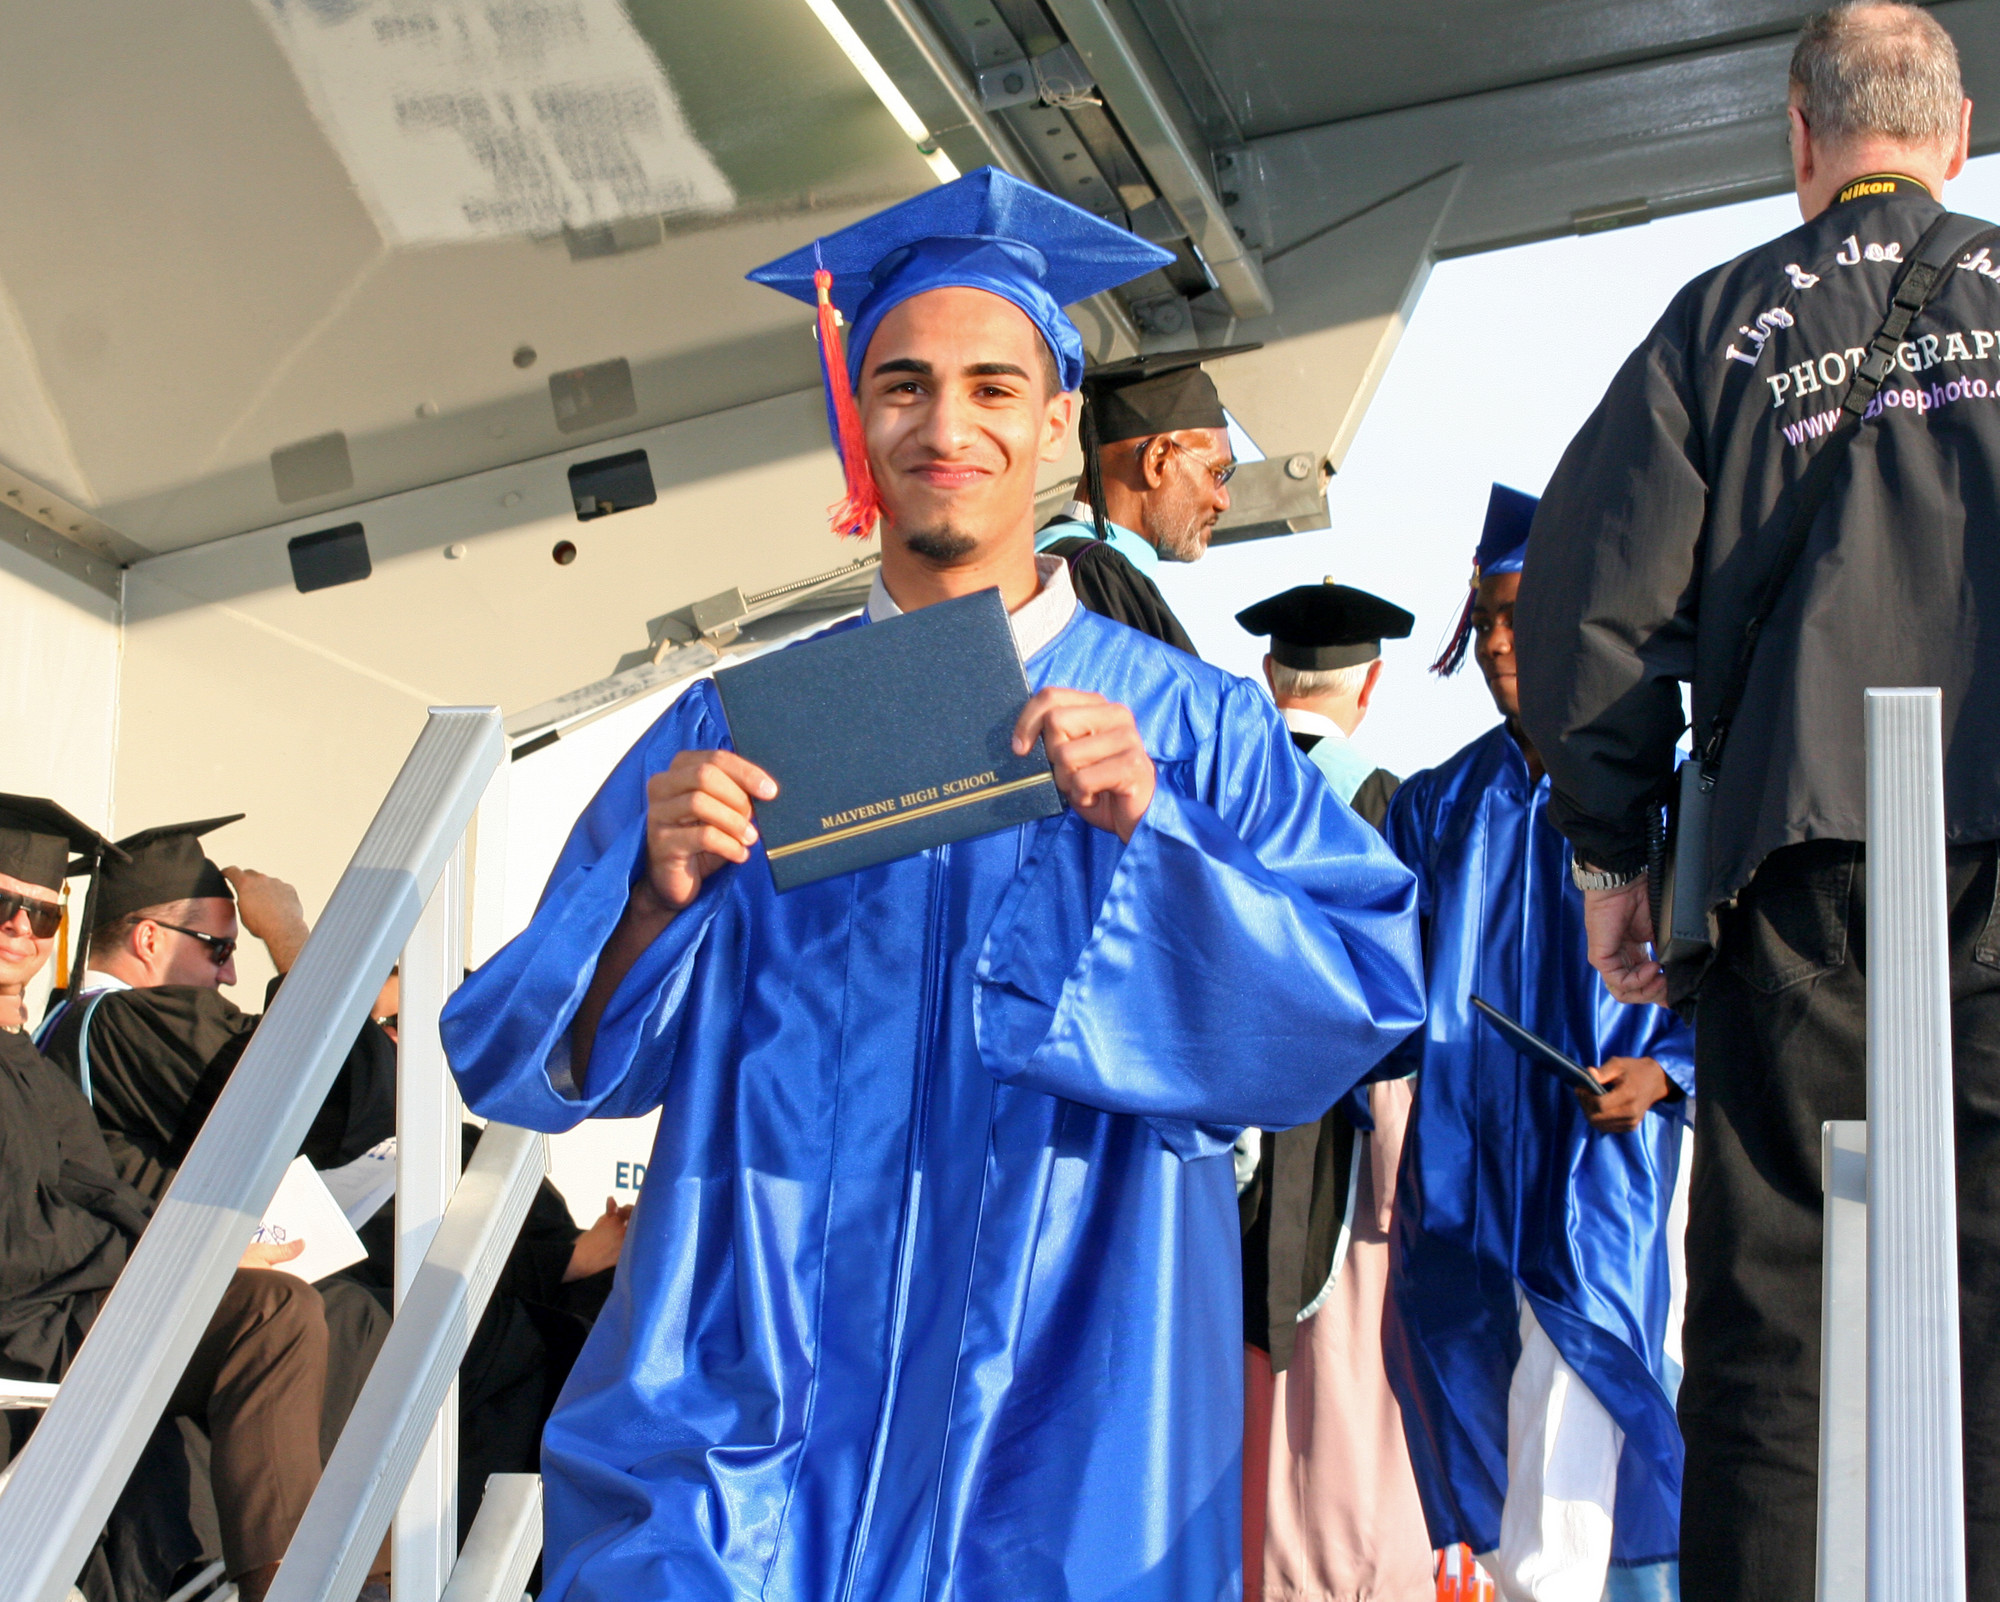 Malverne High School graduate Steven Reyes proudly showed off his diploma.